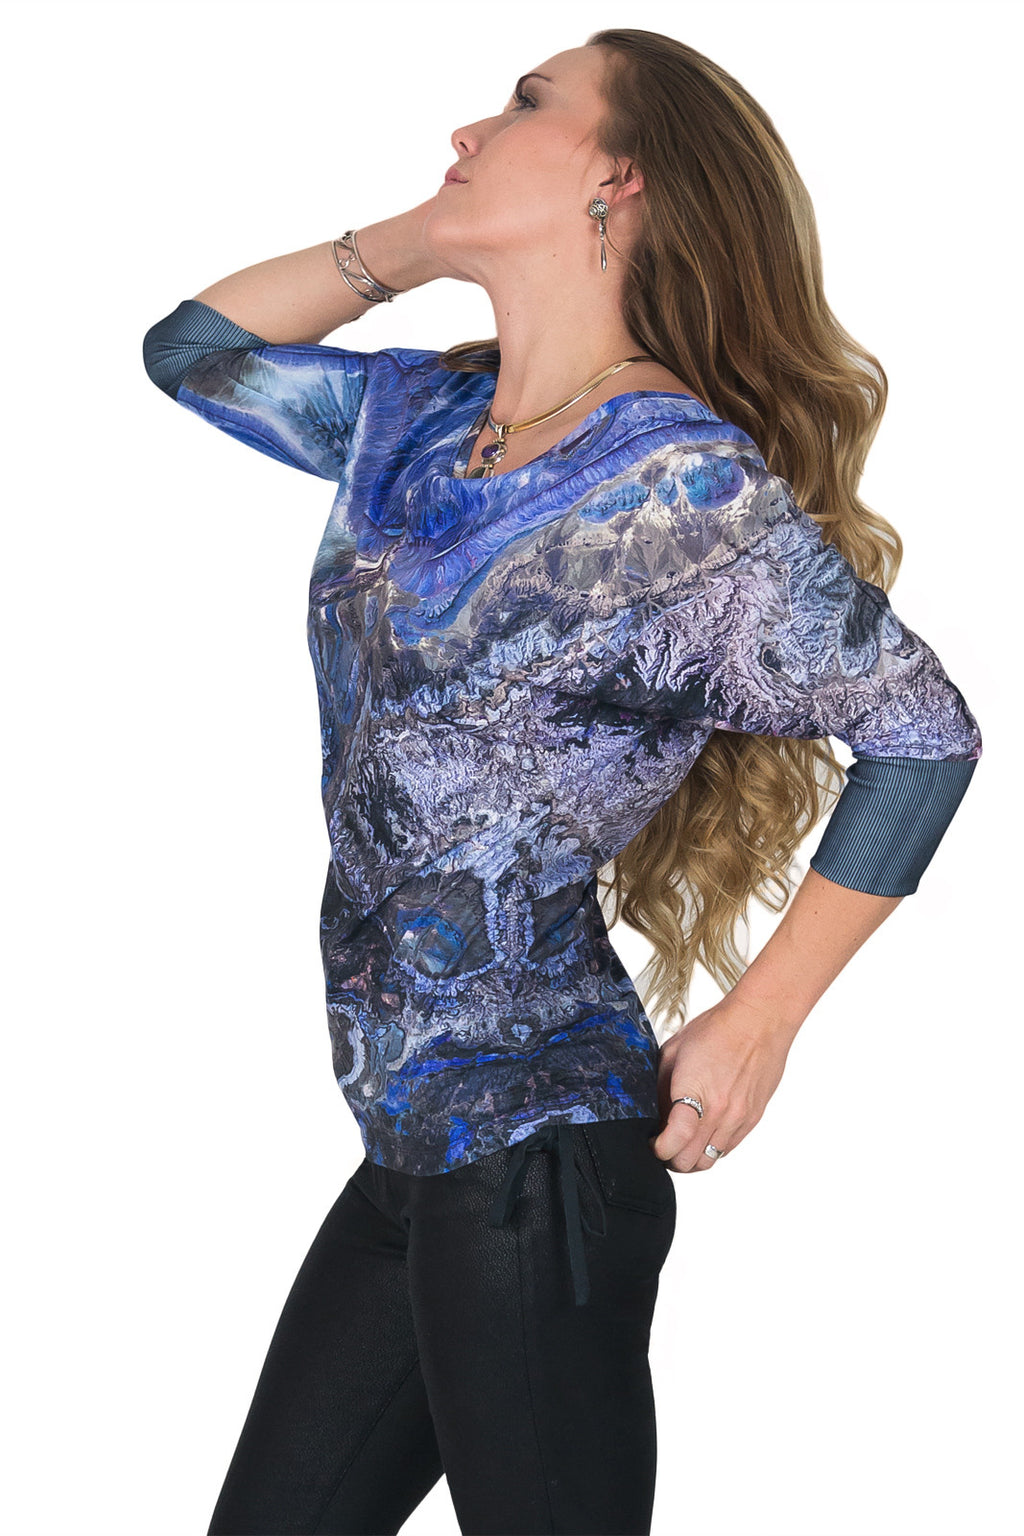 Dolman Top-Landscape Clothing-Atlas Mountains